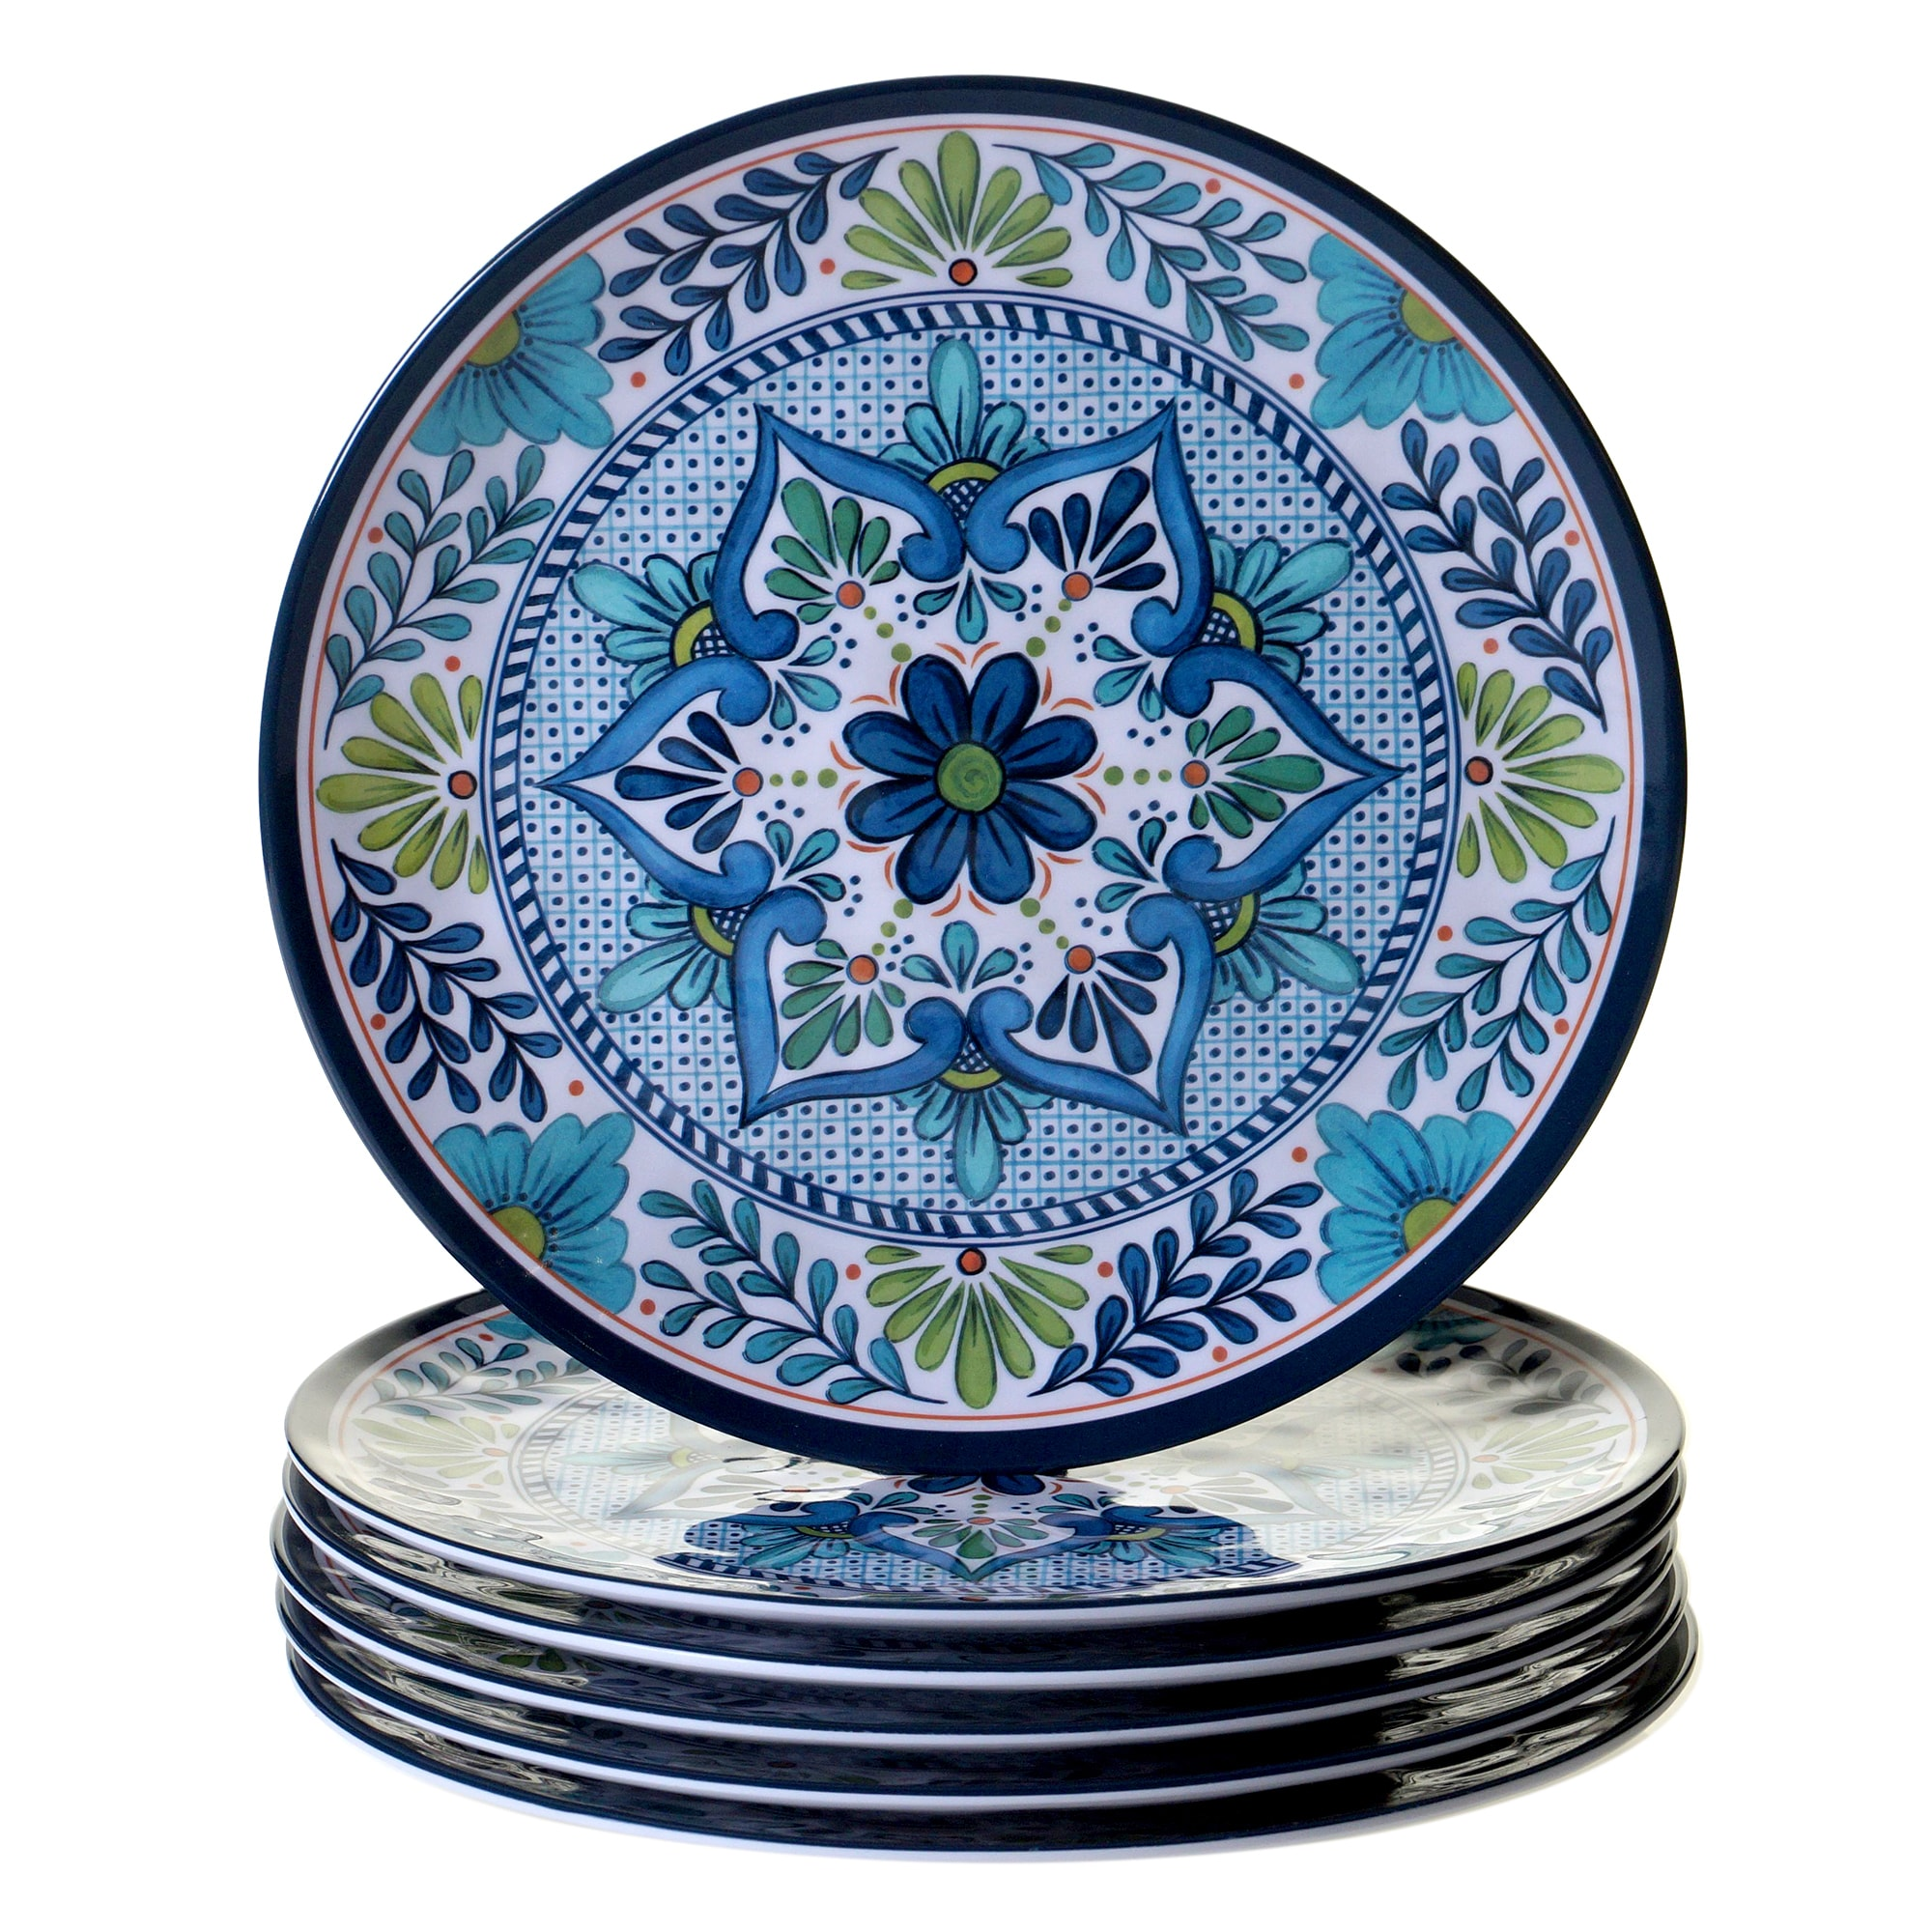 Certified International Talavera Blue/White Melamine Dinner Plates (Set of 6) - Free Shipping On Orders Over $45 - Overstock - 20795552  sc 1 st  Overstock.com & Certified International Talavera Blue/White Melamine Dinner Plates ...